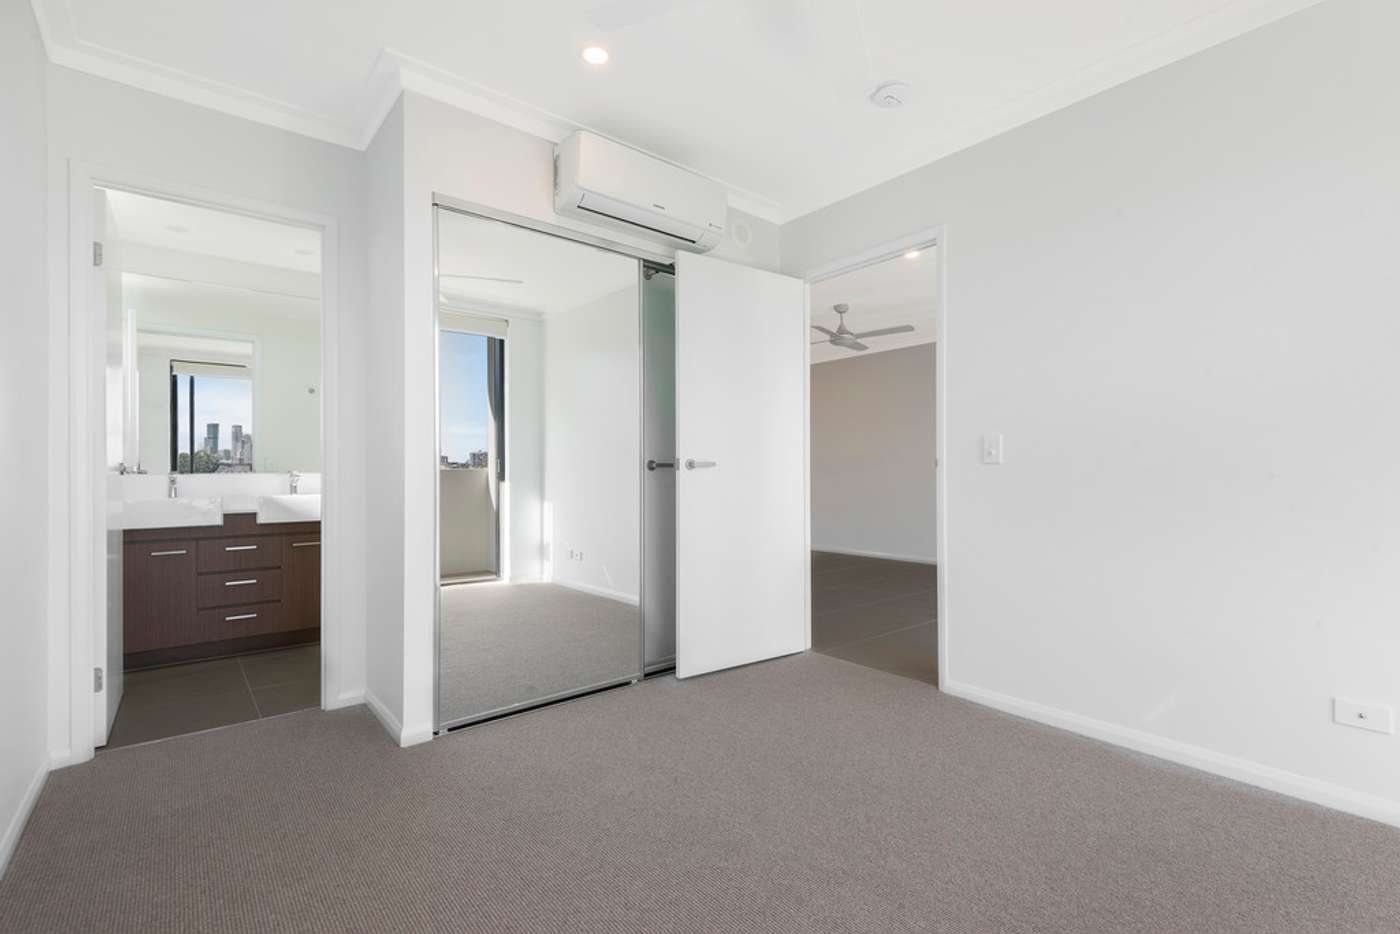 Sixth view of Homely apartment listing, 304/6 Algar Street, Windsor QLD 4030